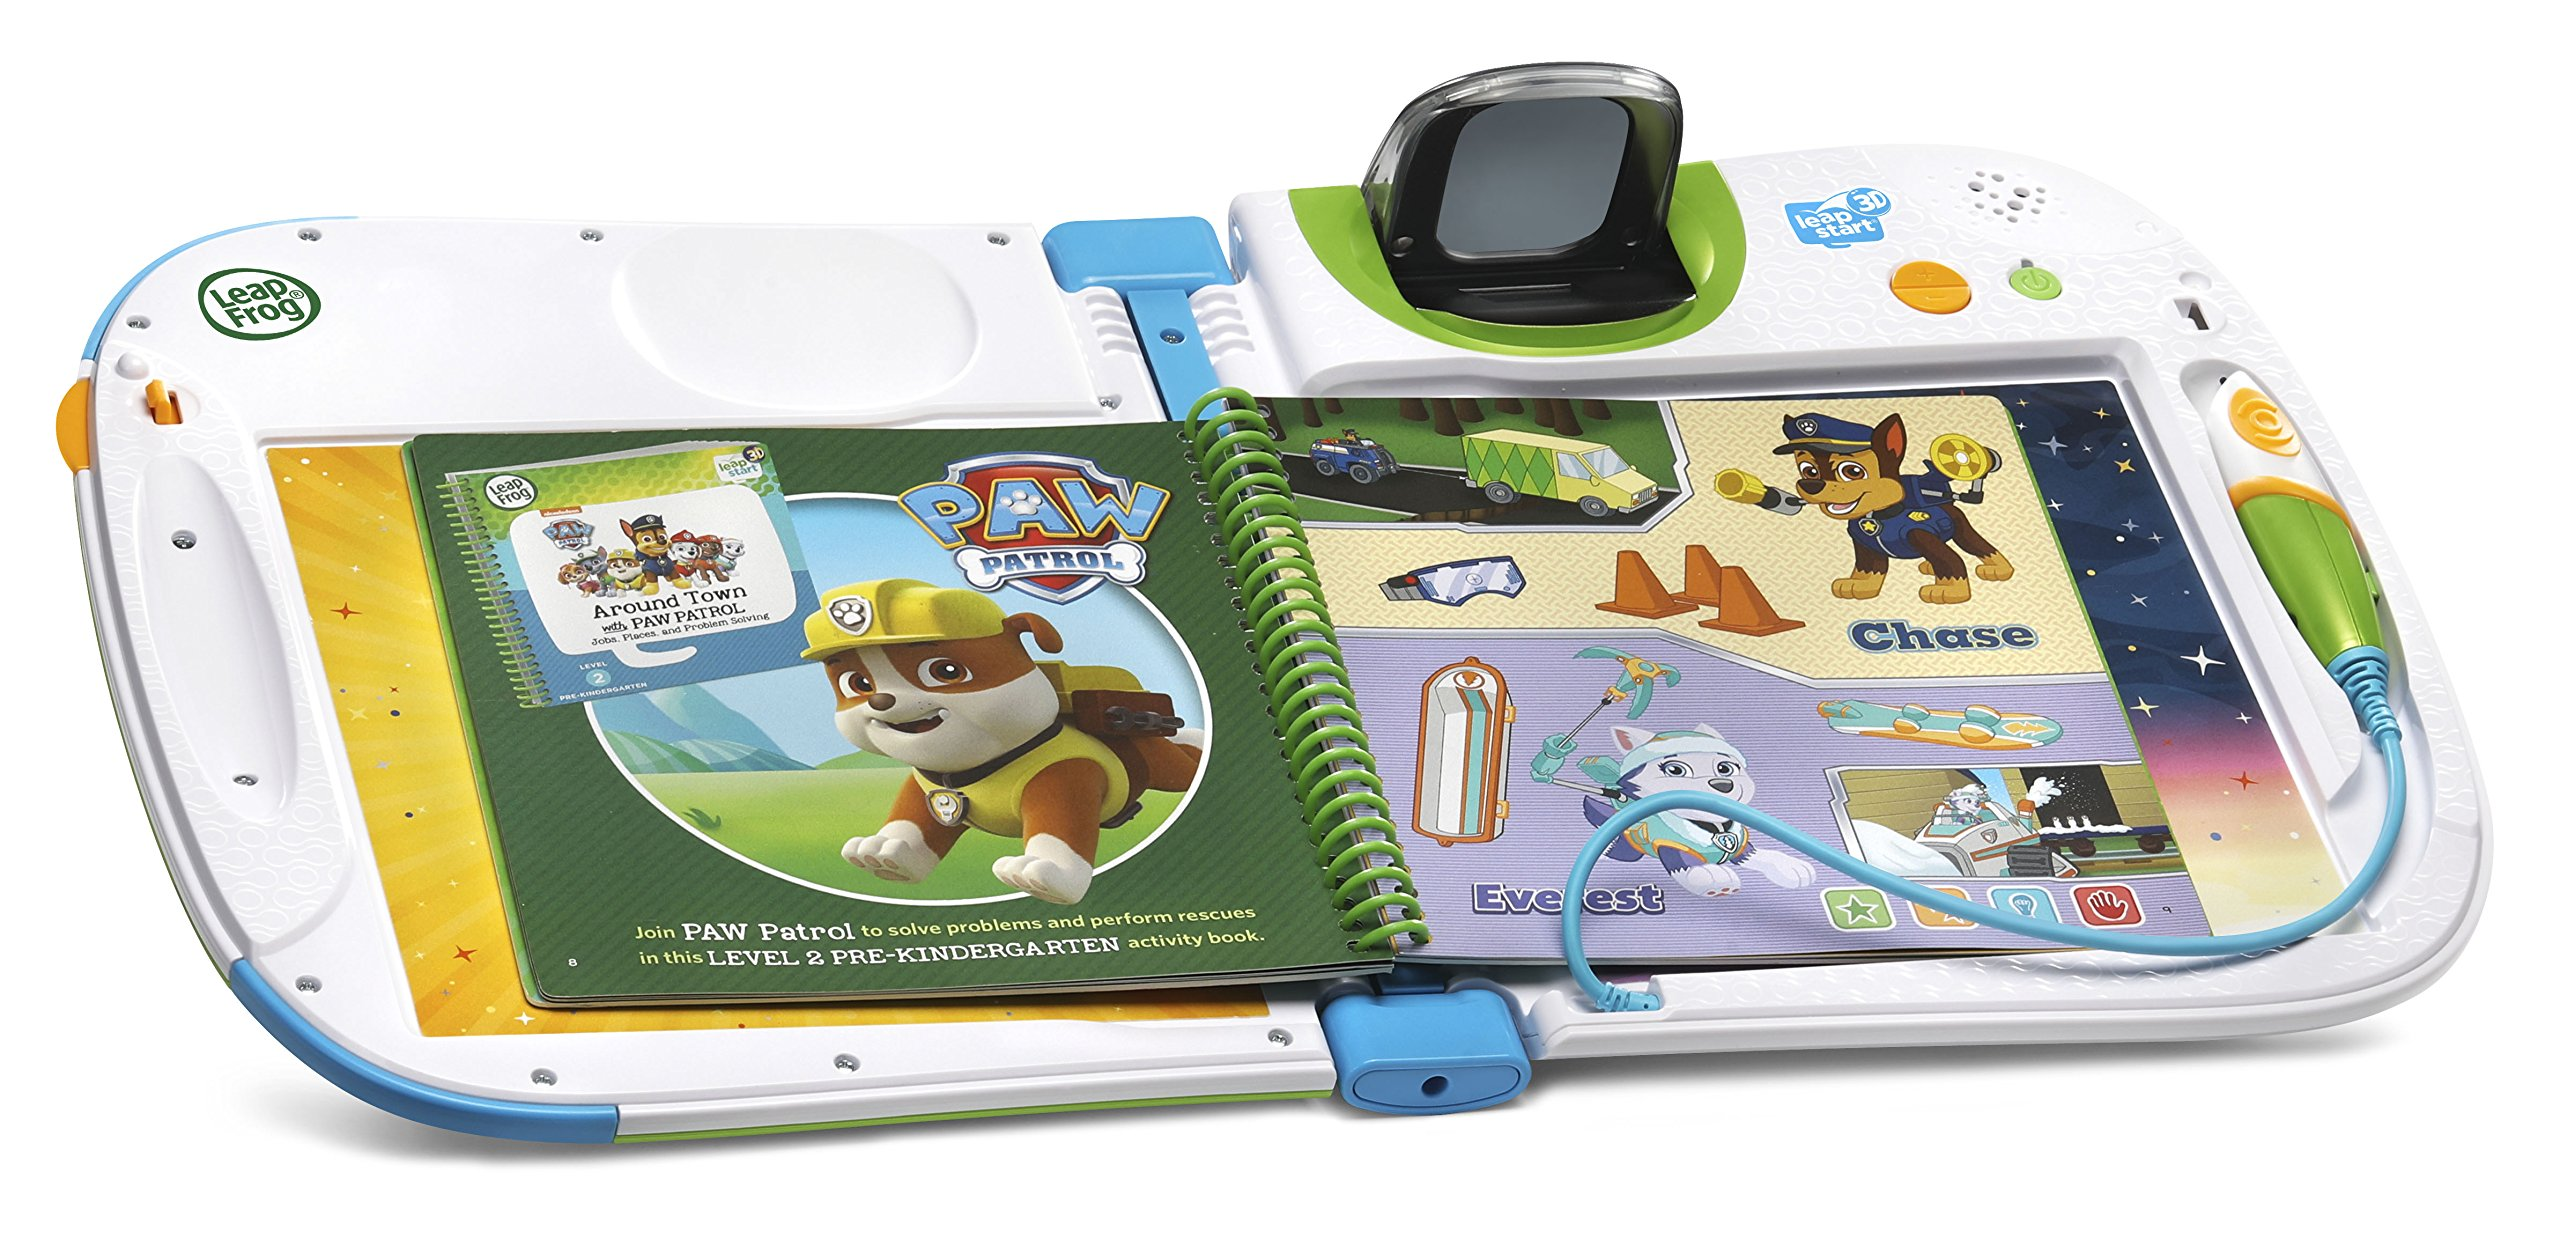 LeapFrog Leapstart 3D Interactive Learning System, Green by LeapFrog (Image #8)